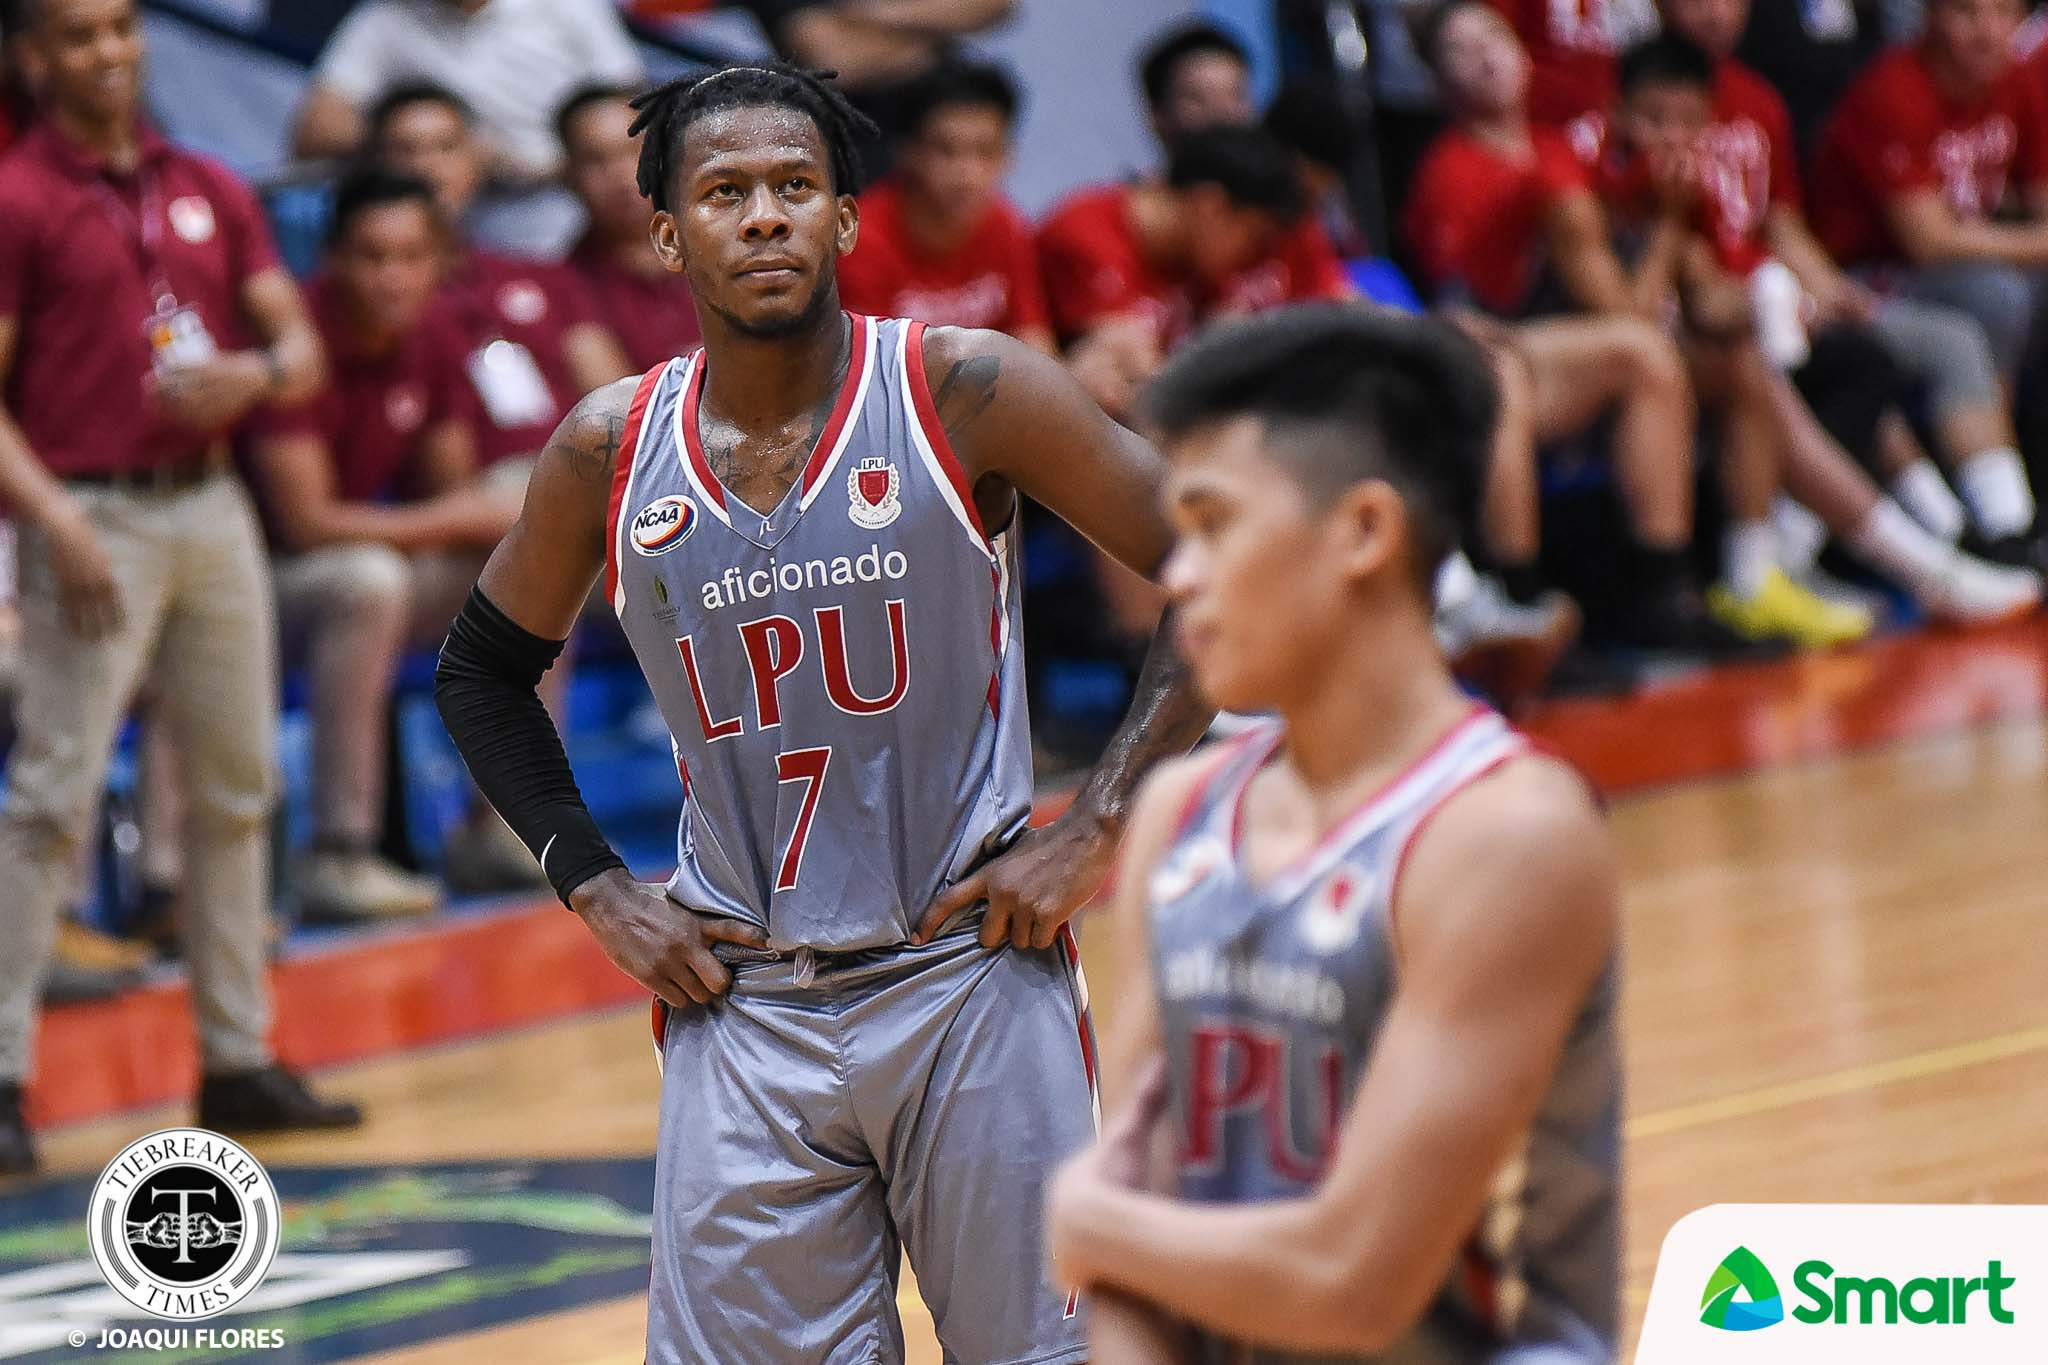 Tiebreaker Times Topex Robinson talks as a father: 'CJ didn't do anything wrong, hindi naman siya nag-ligang labas' Basketball LPU NCAA News  Topex Robinson NCAA Season 94 Seniors Basketball NCAA Season 94 Lyceum Seniors Basketball CJ Perez